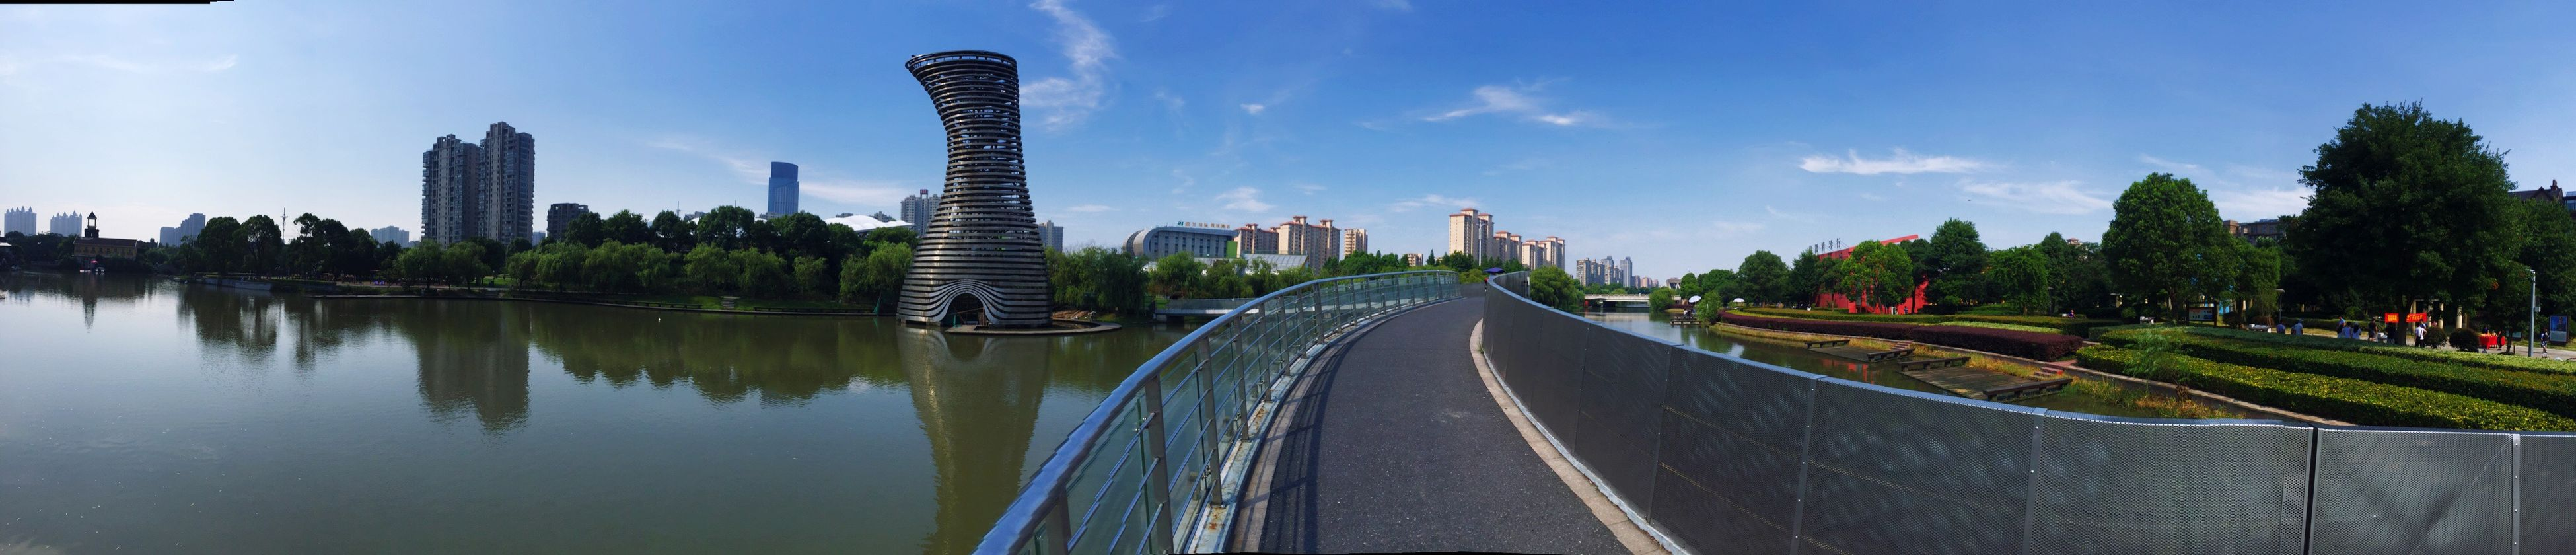 city, architecture, built structure, building exterior, tree, skyscraper, water, sky, outdoors, modern, no people, day, cityscape